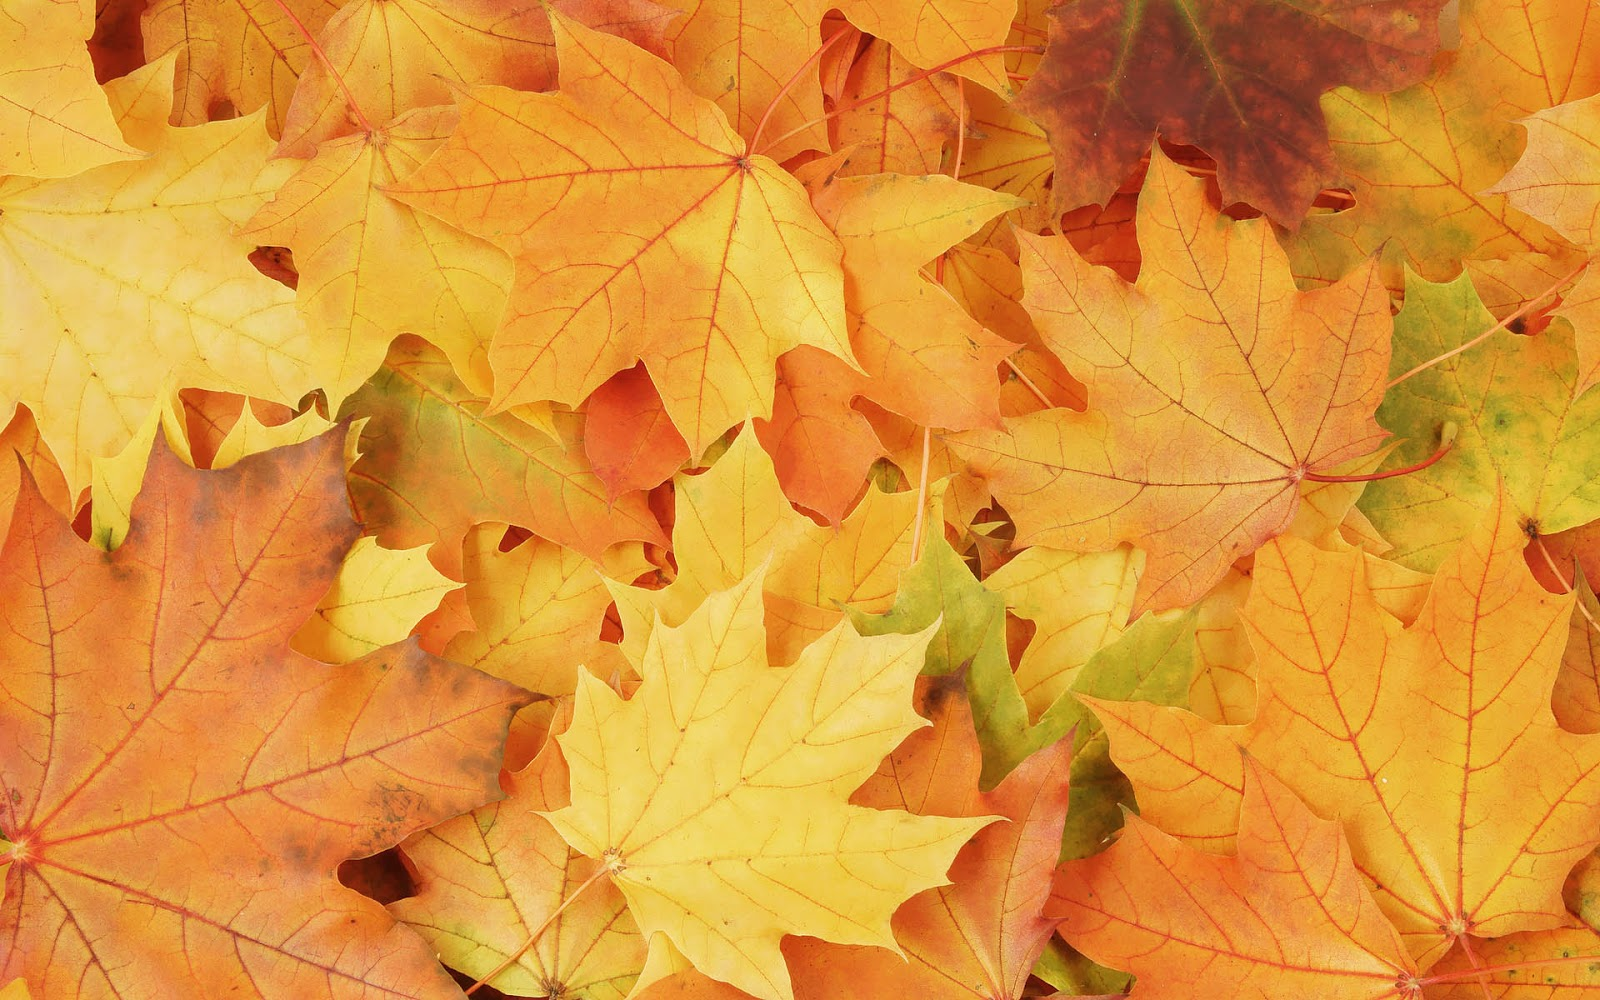 Free Download Best Wallpaper Wallpaper With Orange Yellow Autumn Leaves